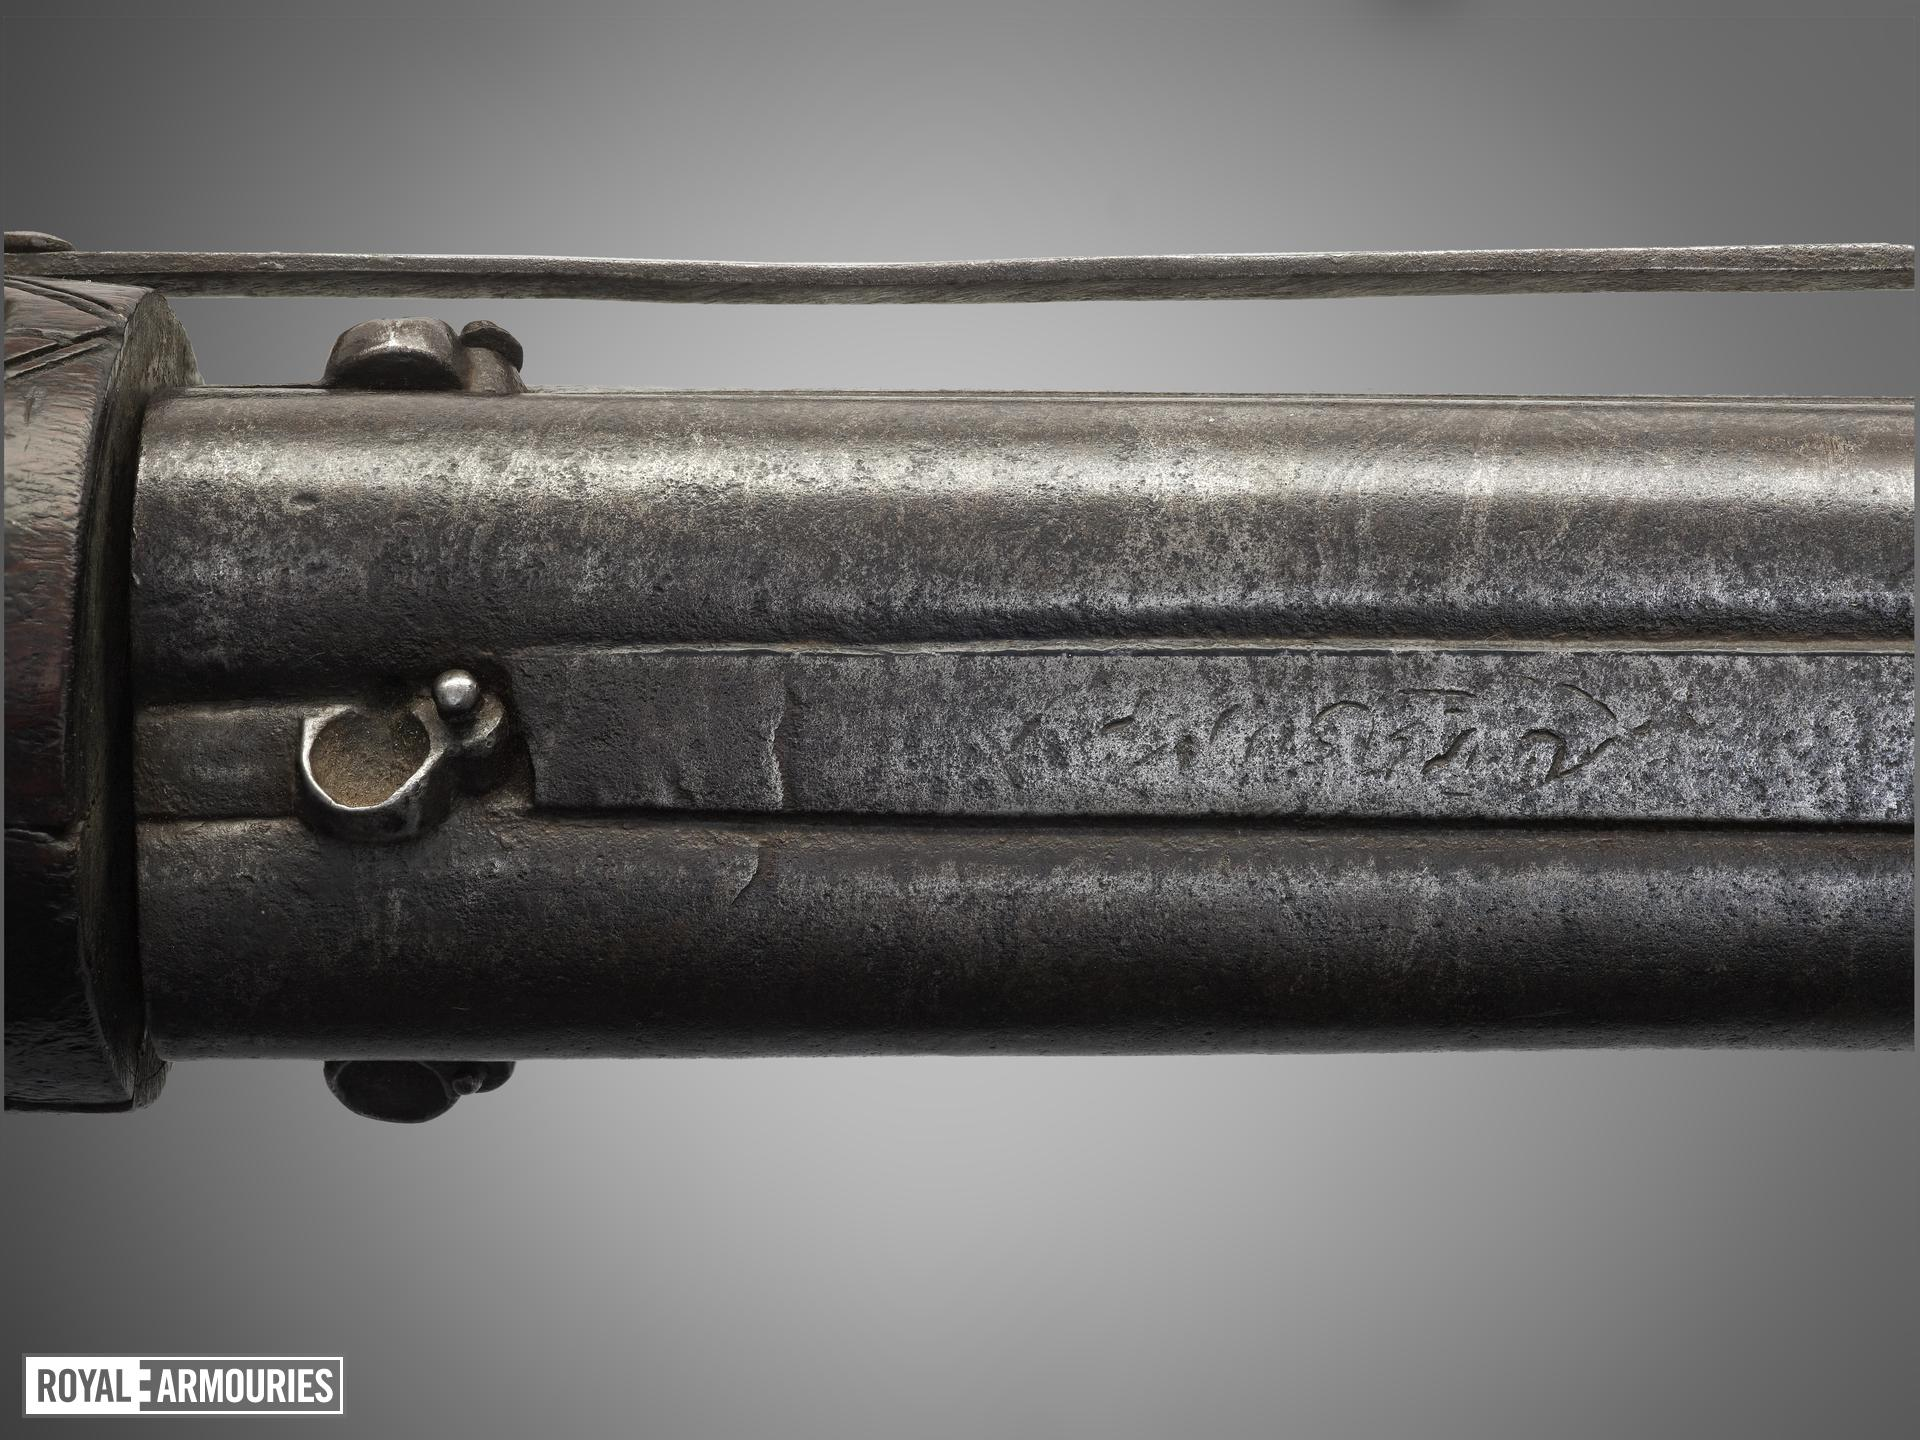 Matchlock revolver gun with rounded butt